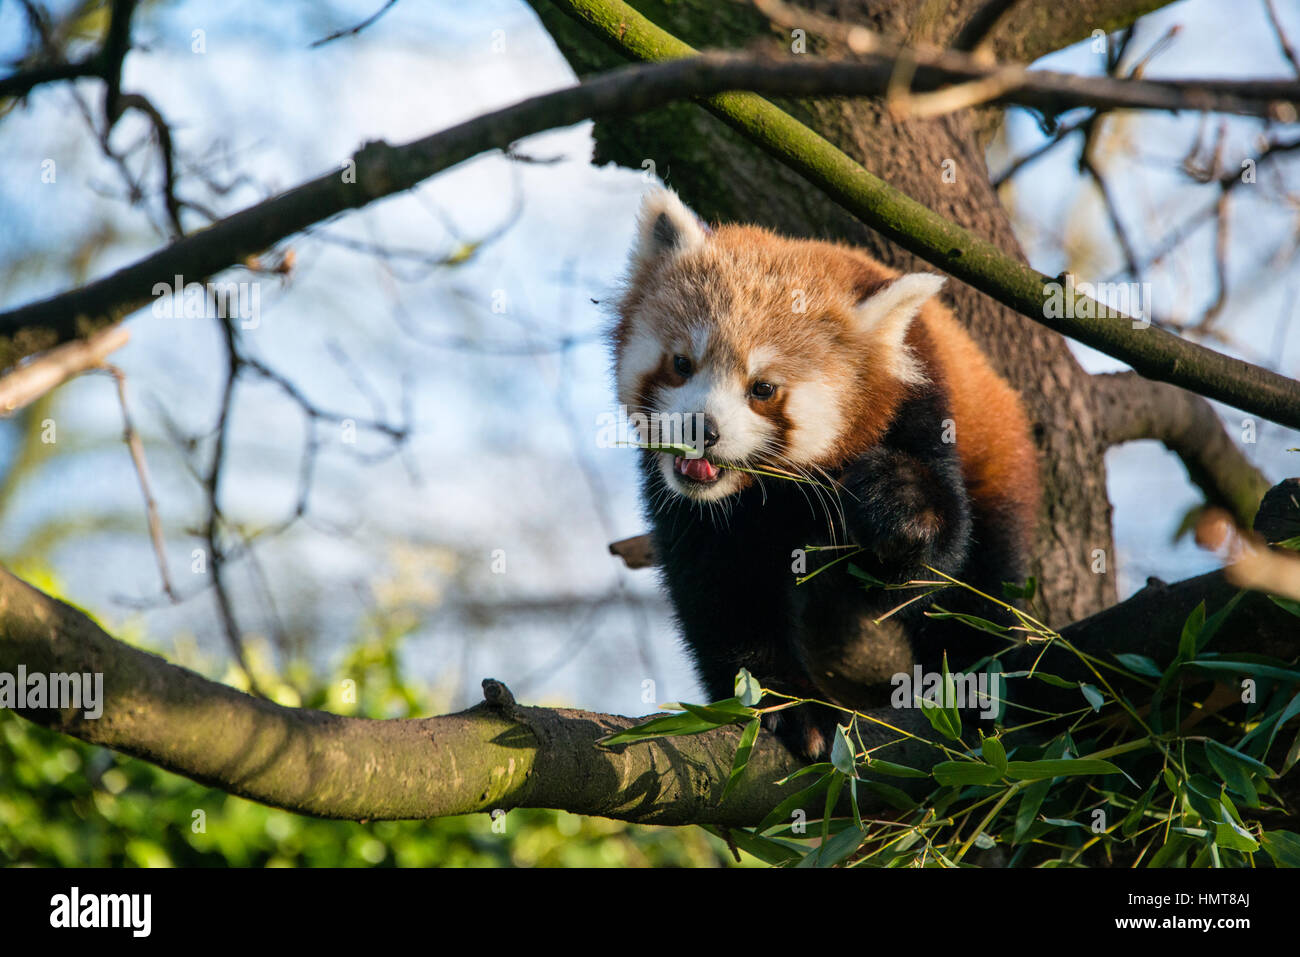 A red panda eating leaves in a tree at a zoo in England a zoo in England - Stock Image